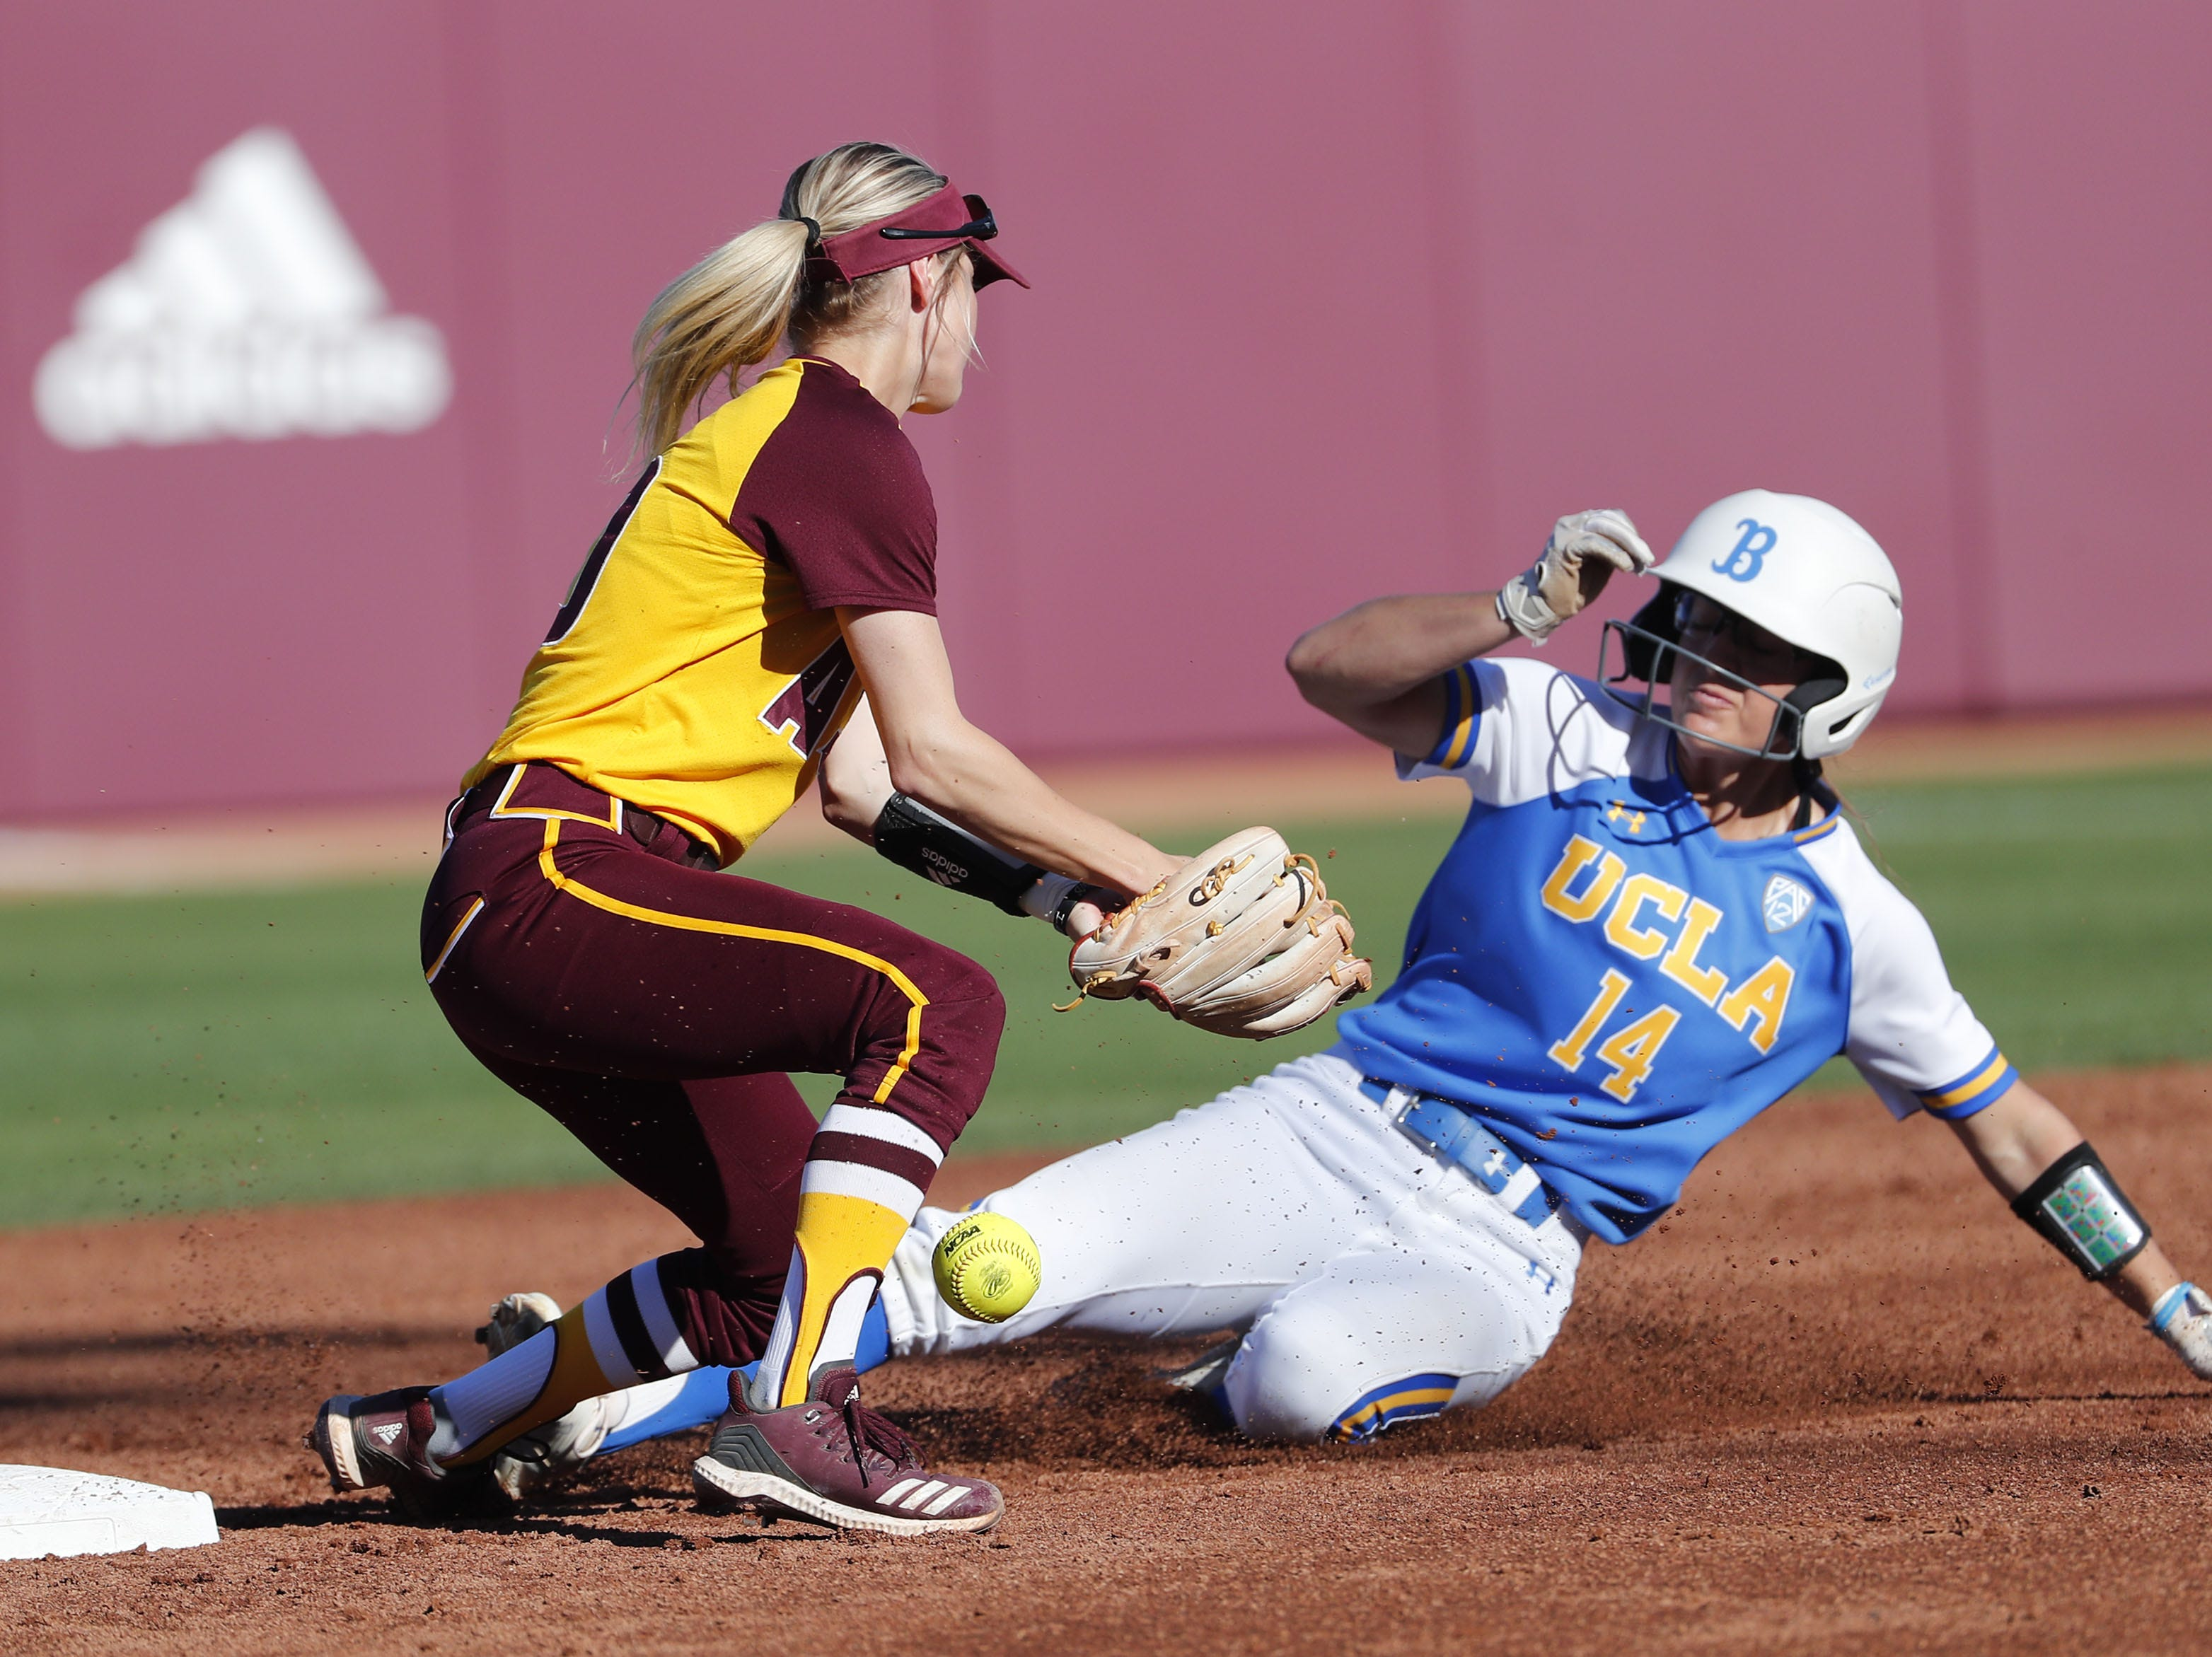 UCLA's Kelli Godin steals second base ahead of the tag by ASU's Bella Loomis during the second inning at Farrington Stadium in Tempe, Ariz. April 7, 2019.